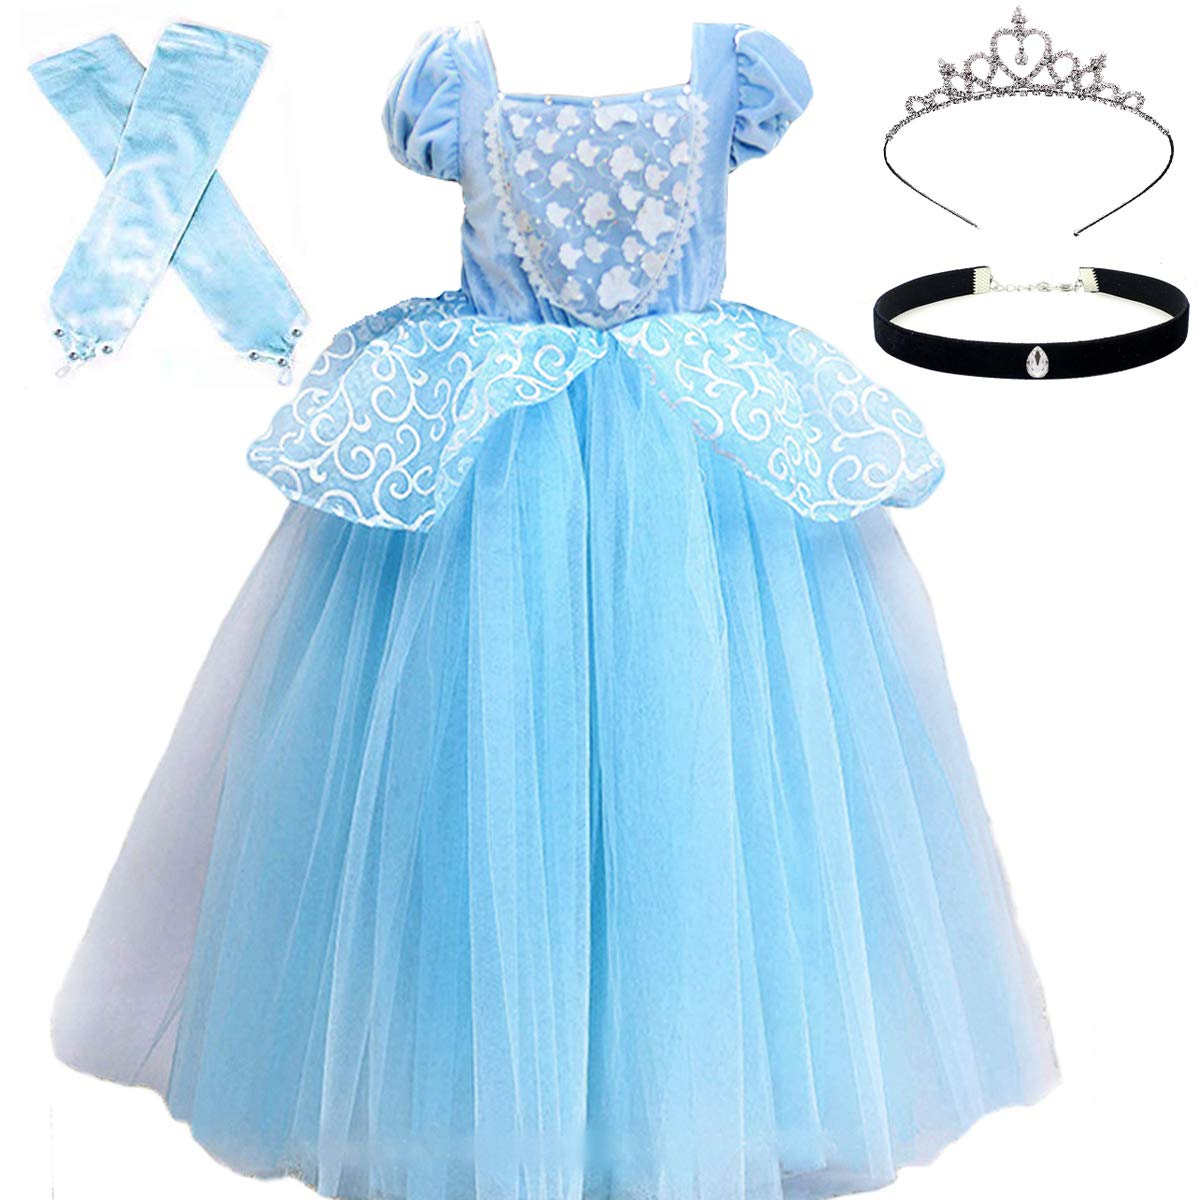 Cinderella Costumes Girls Princess Dress Up Fancy Halloween Christmas Party with Tiara and Choker Set Blue